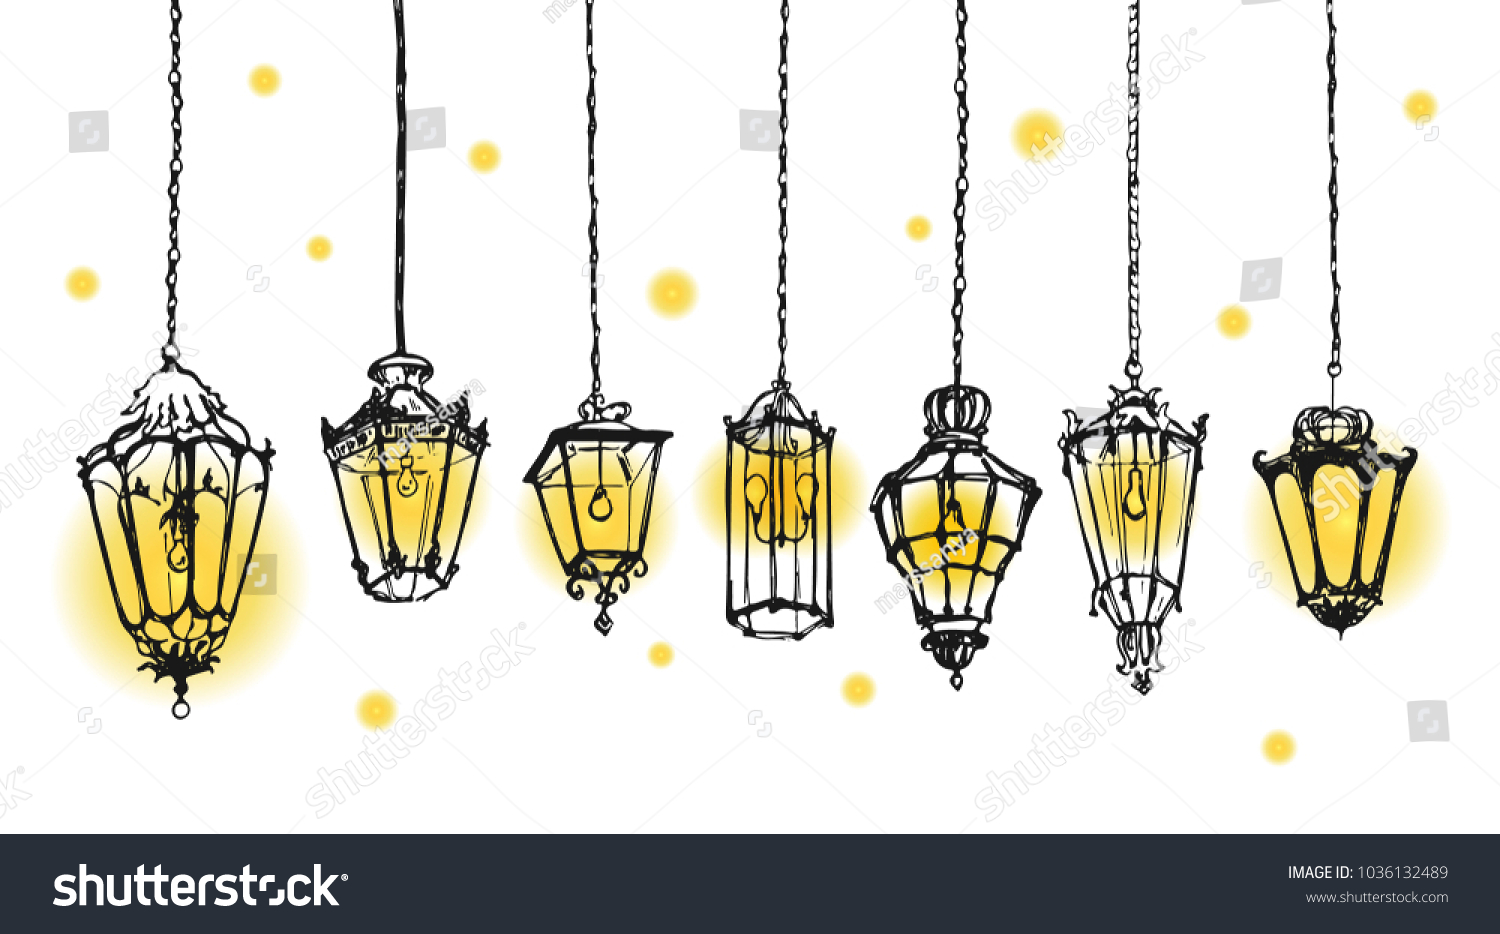 Affordable Old Lanterns Sketch Collection Hand Drawn Street Lamps Retro Vintage Lamp Drawing With Lantern